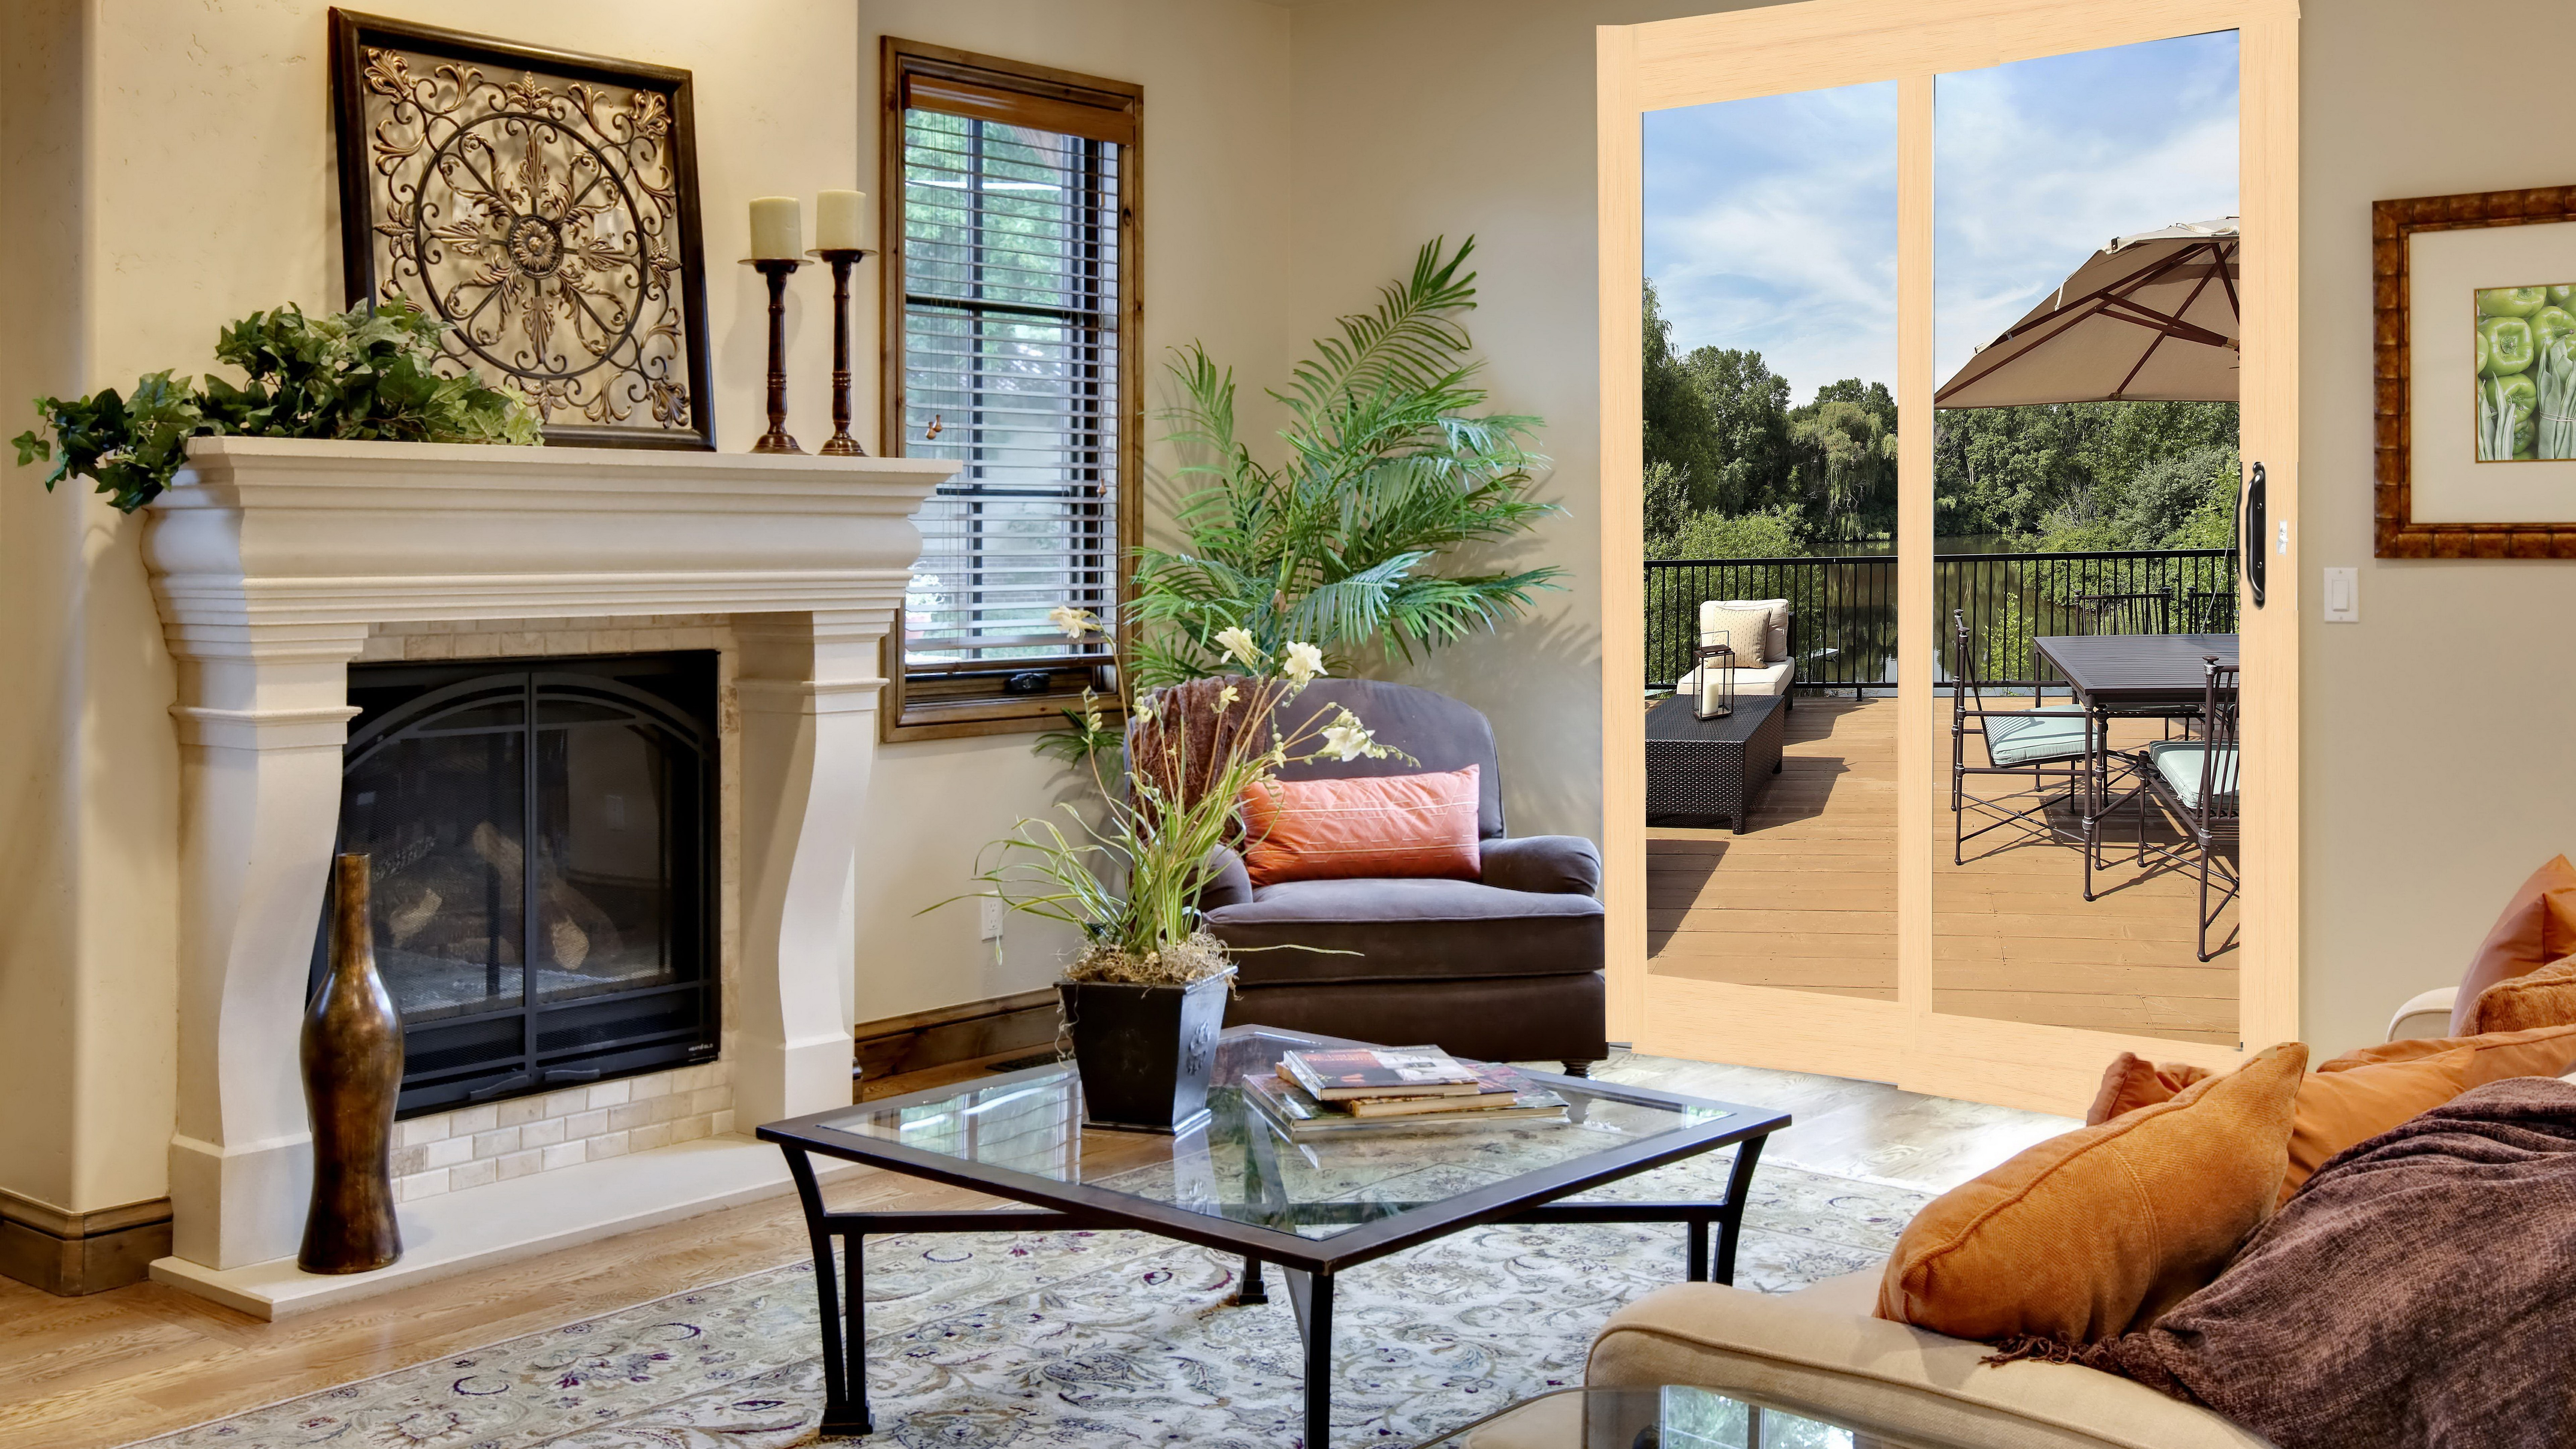 Image: Fireplace, table, sofa, window, blinds, plants, painting, terrace